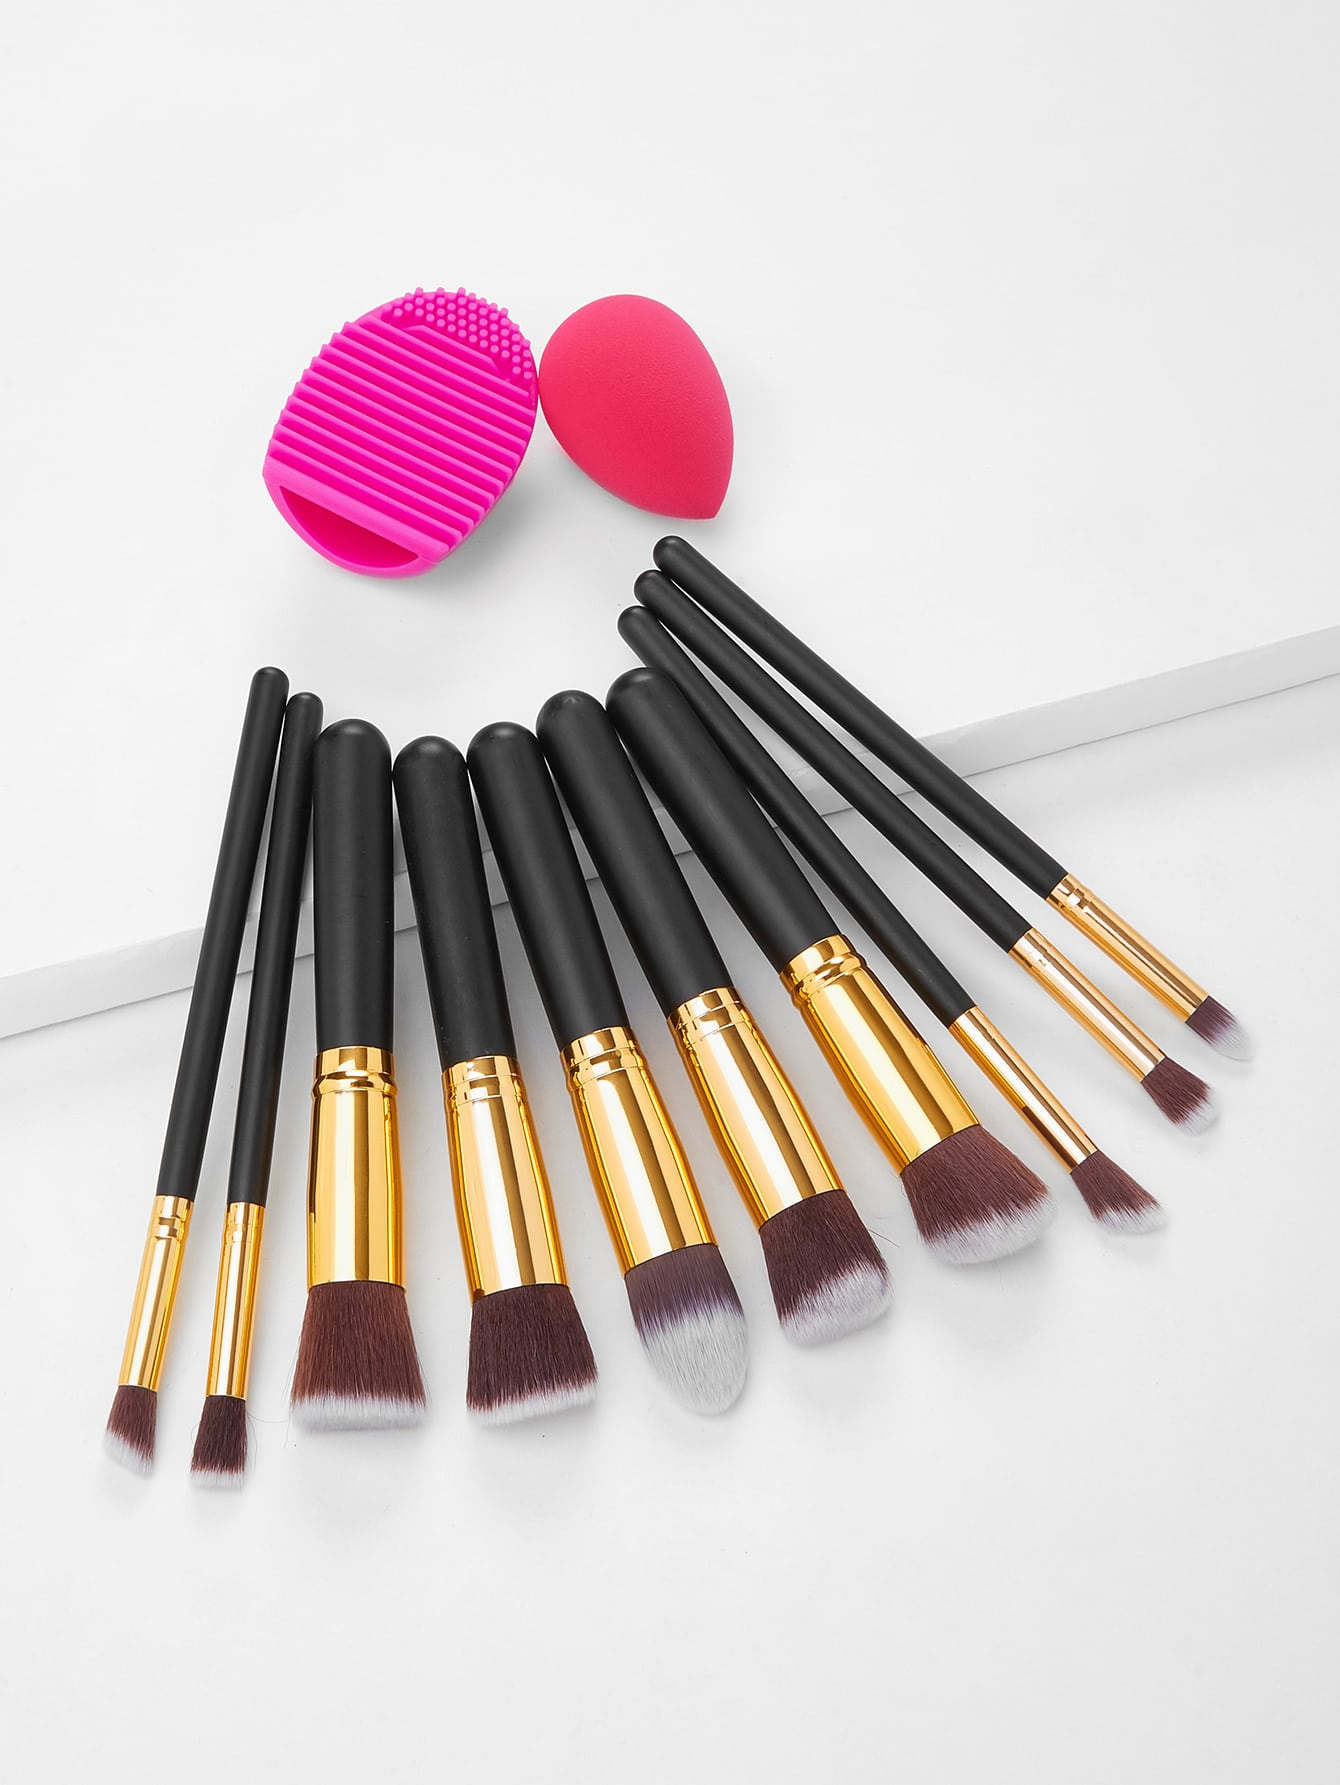 Black Cosmetic Makeup Brush Set With Blending Sponges vivienne sabo round latex makeup sponges set cпонж круглый для макияжа латексный 2 шт